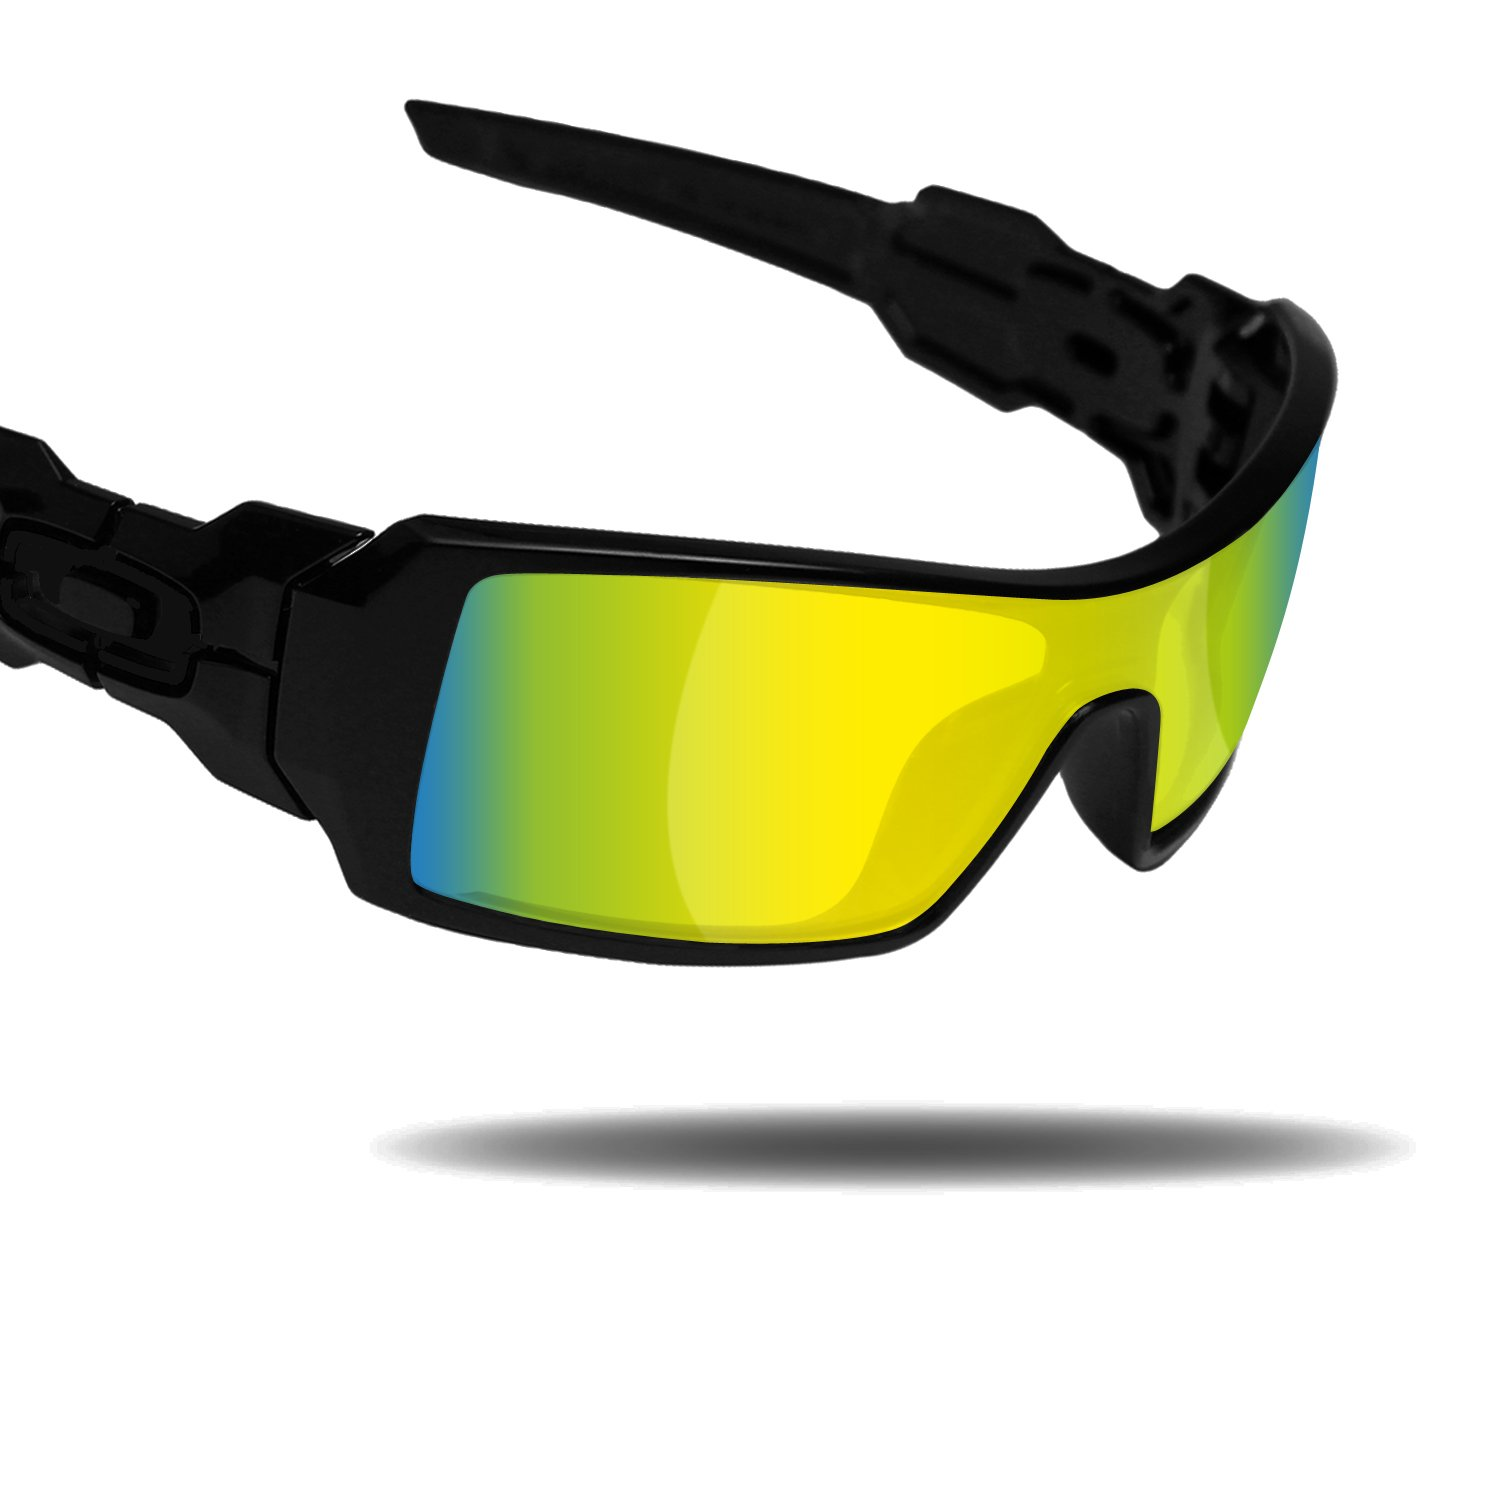 7f358e44f61 Amazon.com  Fiskr Anti-Saltwater Replacement Lenses for Oakley Oil Rig  Sunglasses - Various Colors  Clothing